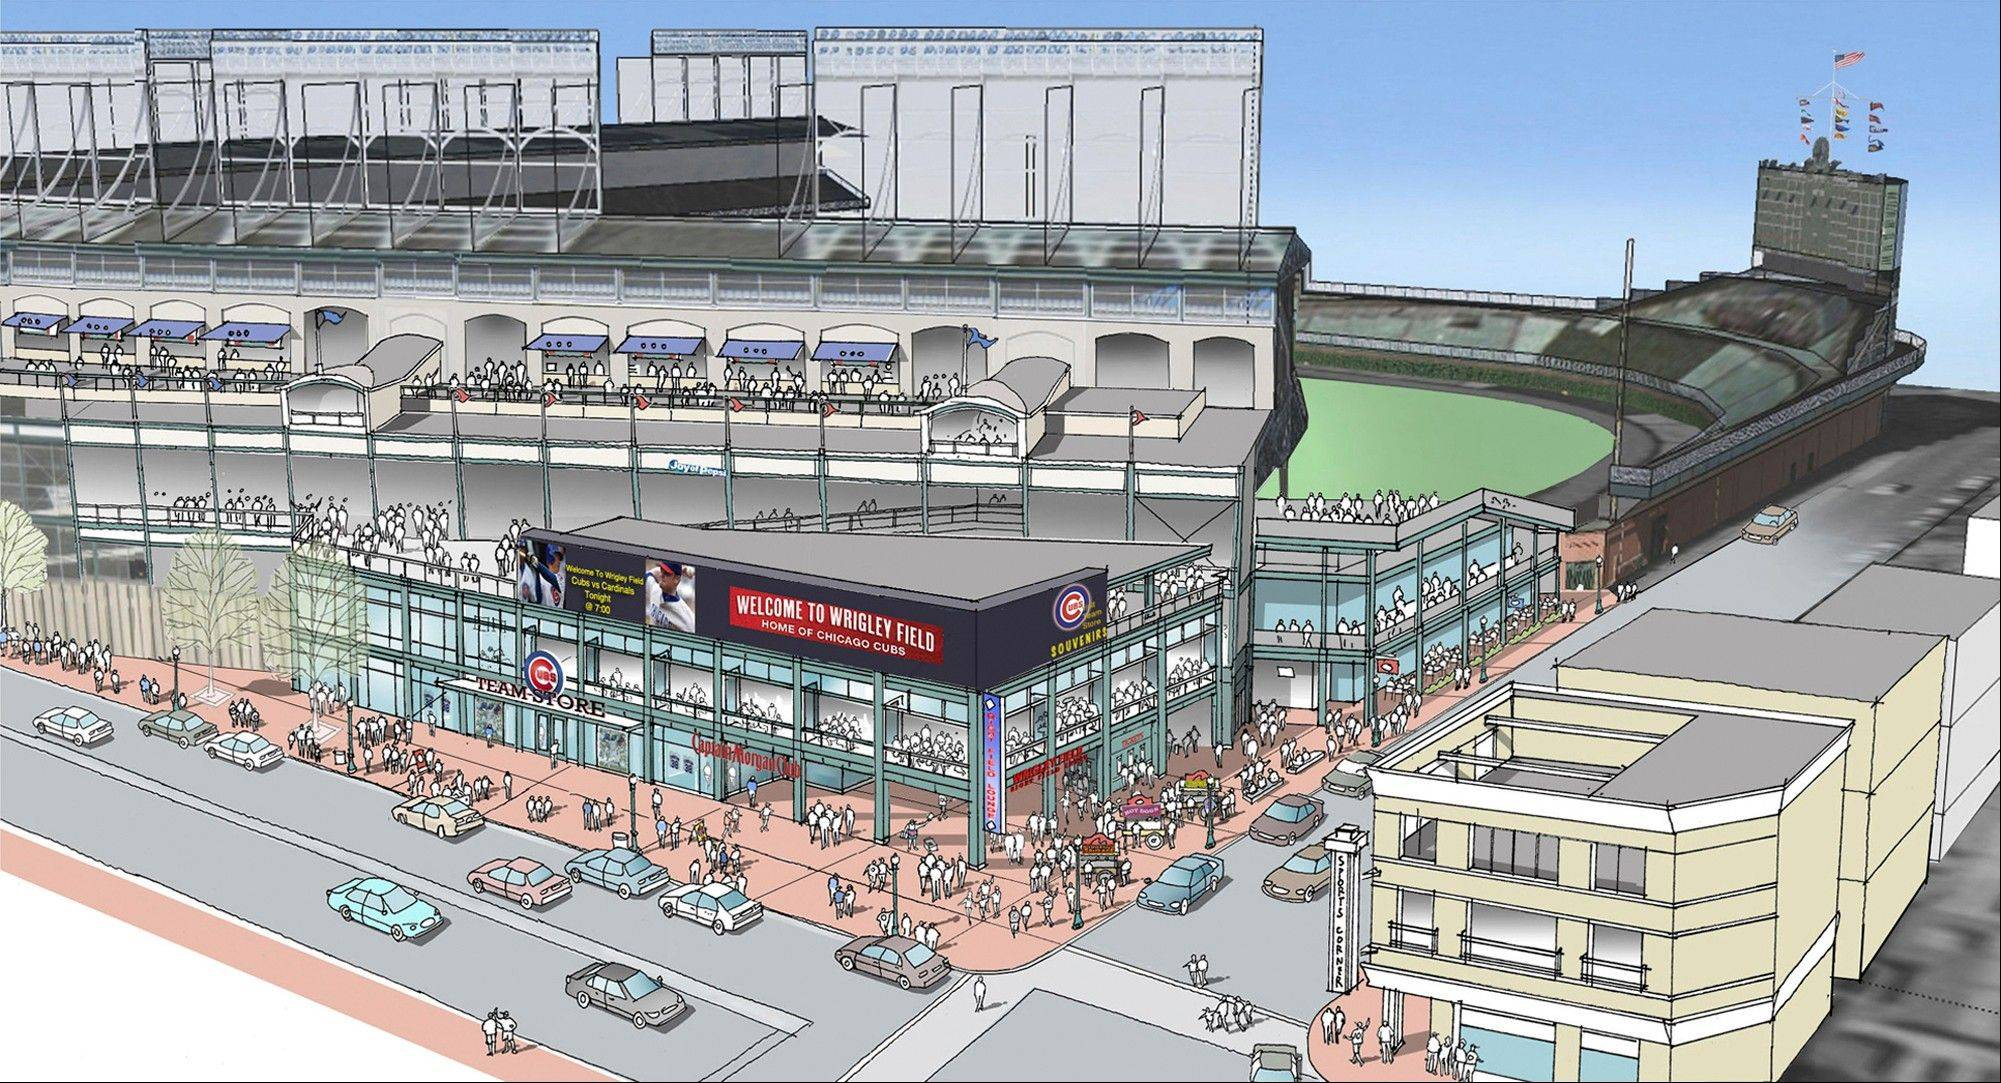 This artist rendering provided Wednesday by the Cubs shows renovations planned at Wrigley Field. Part of the $500 million renovation plan for the 99-year-old stadium is to build an exterior plaza at the corner of Addison and Sheffield.